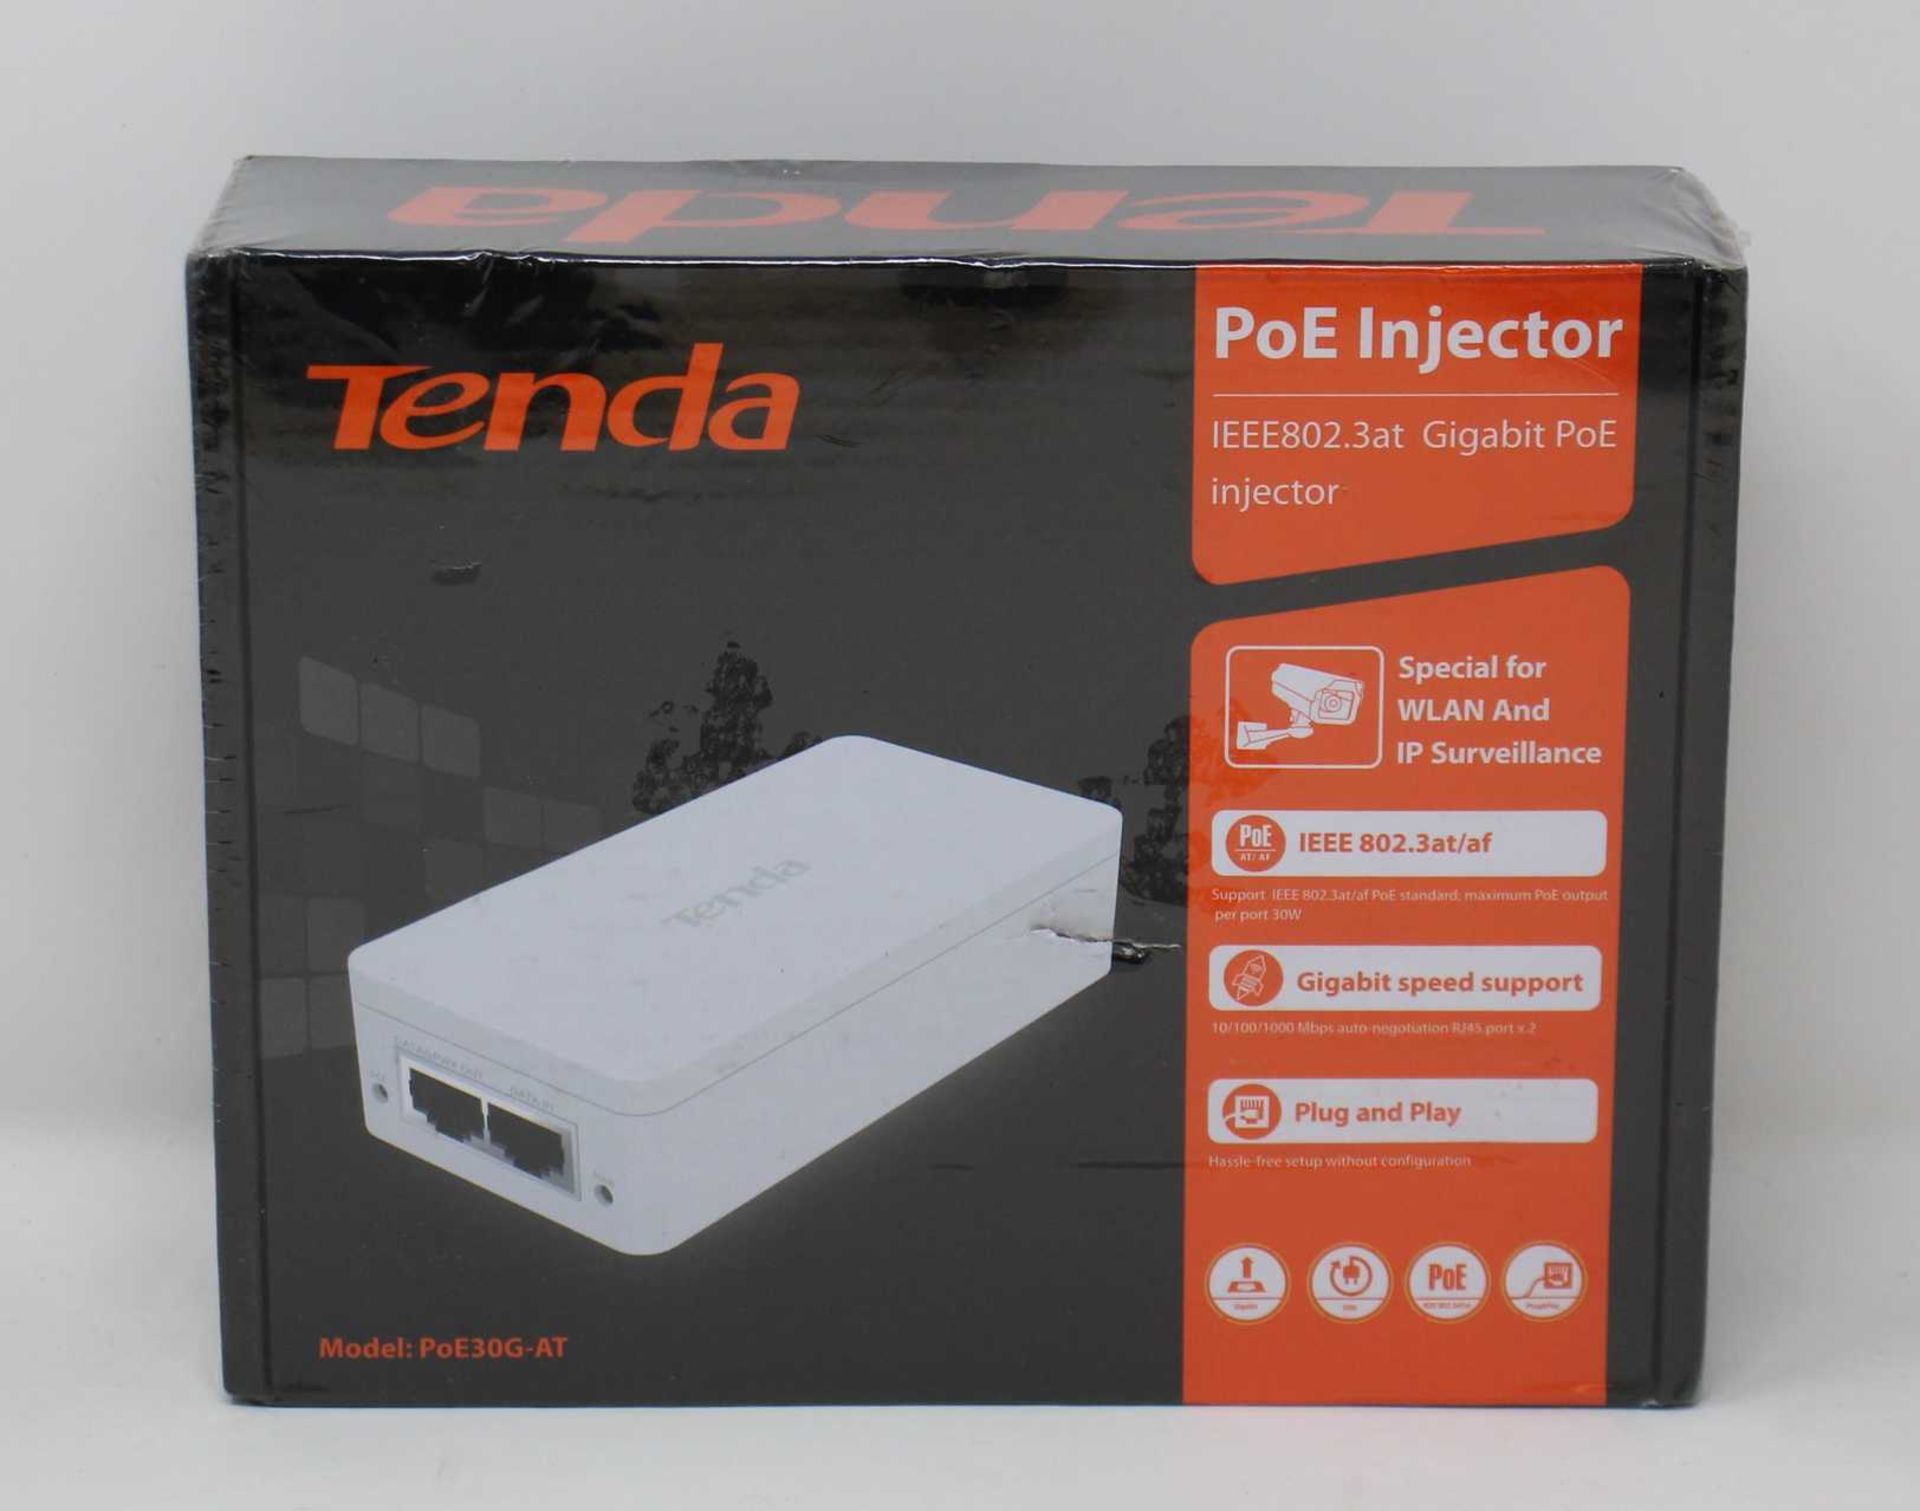 A boxed as new Tenda IEEE802.3at PoE Injector (Model: PoE30G-ATv2.0) (Box sealed).